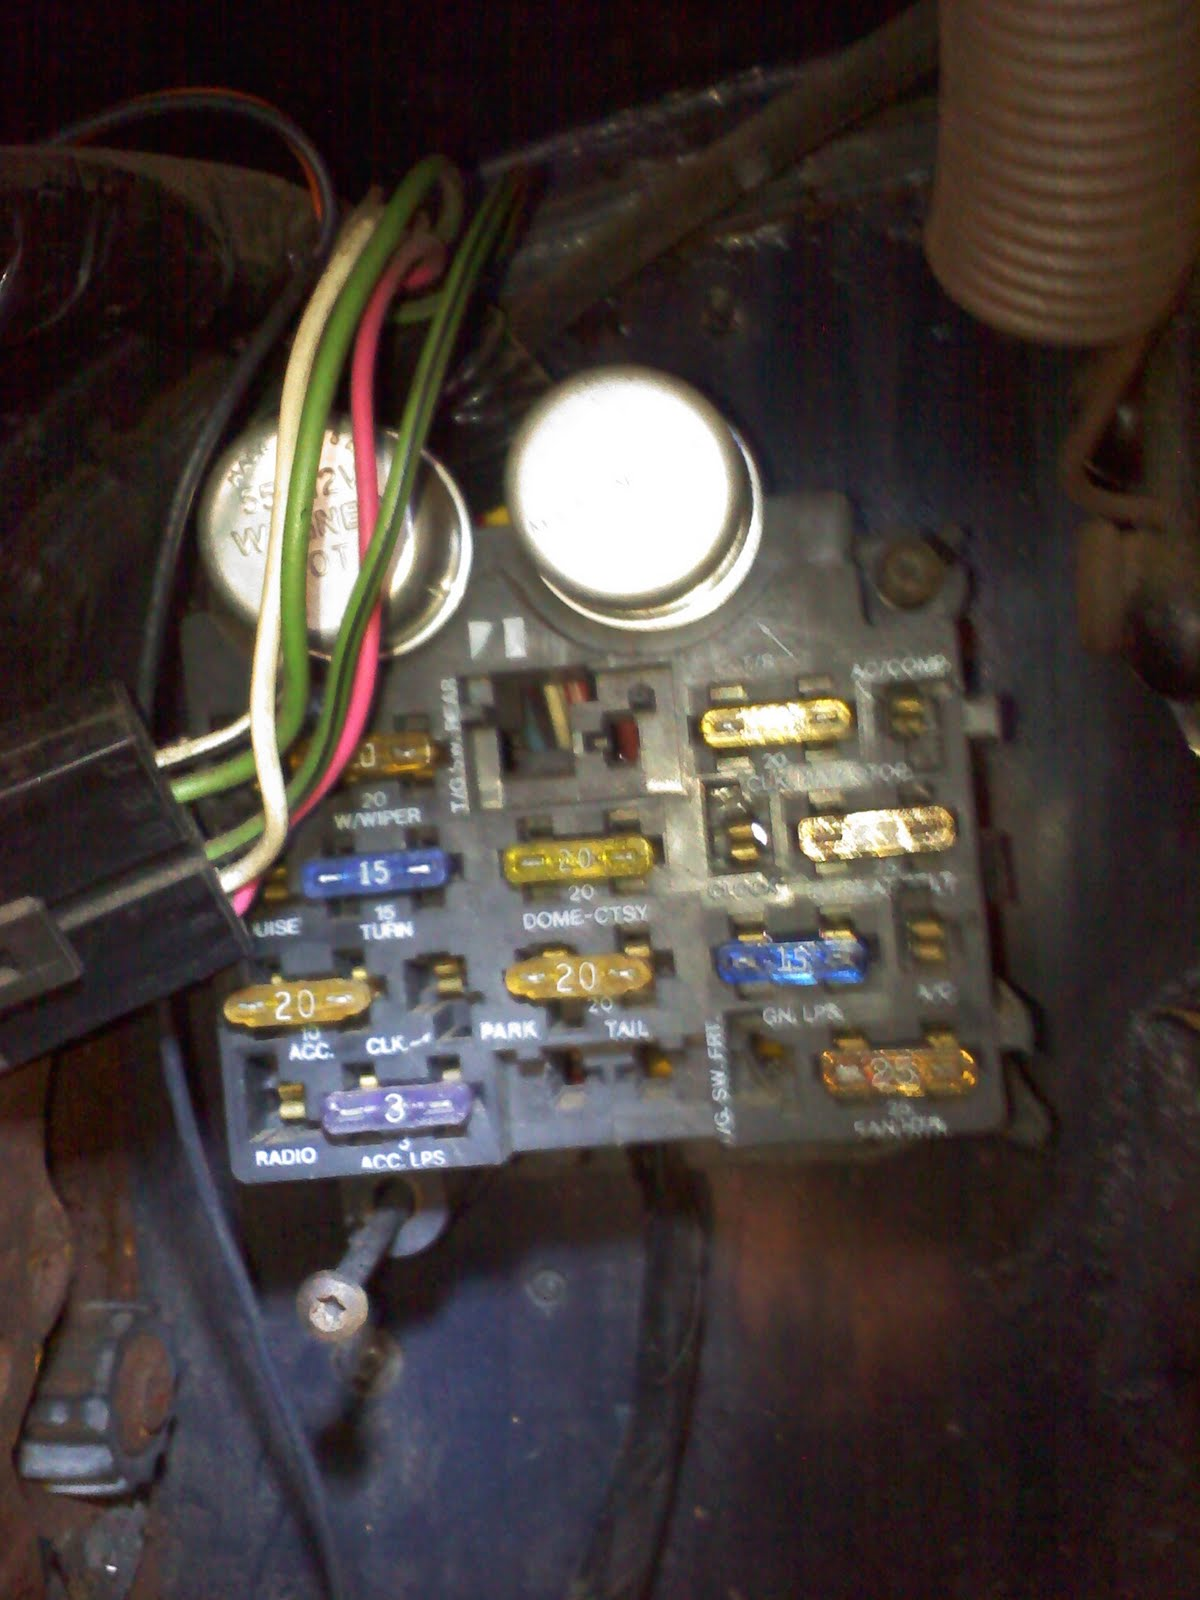 Cj7 Replacement Fuse Box Simple Wiring Diagram Continuing Removing Parts From The Tub 1983 Rebuild Jeep Block